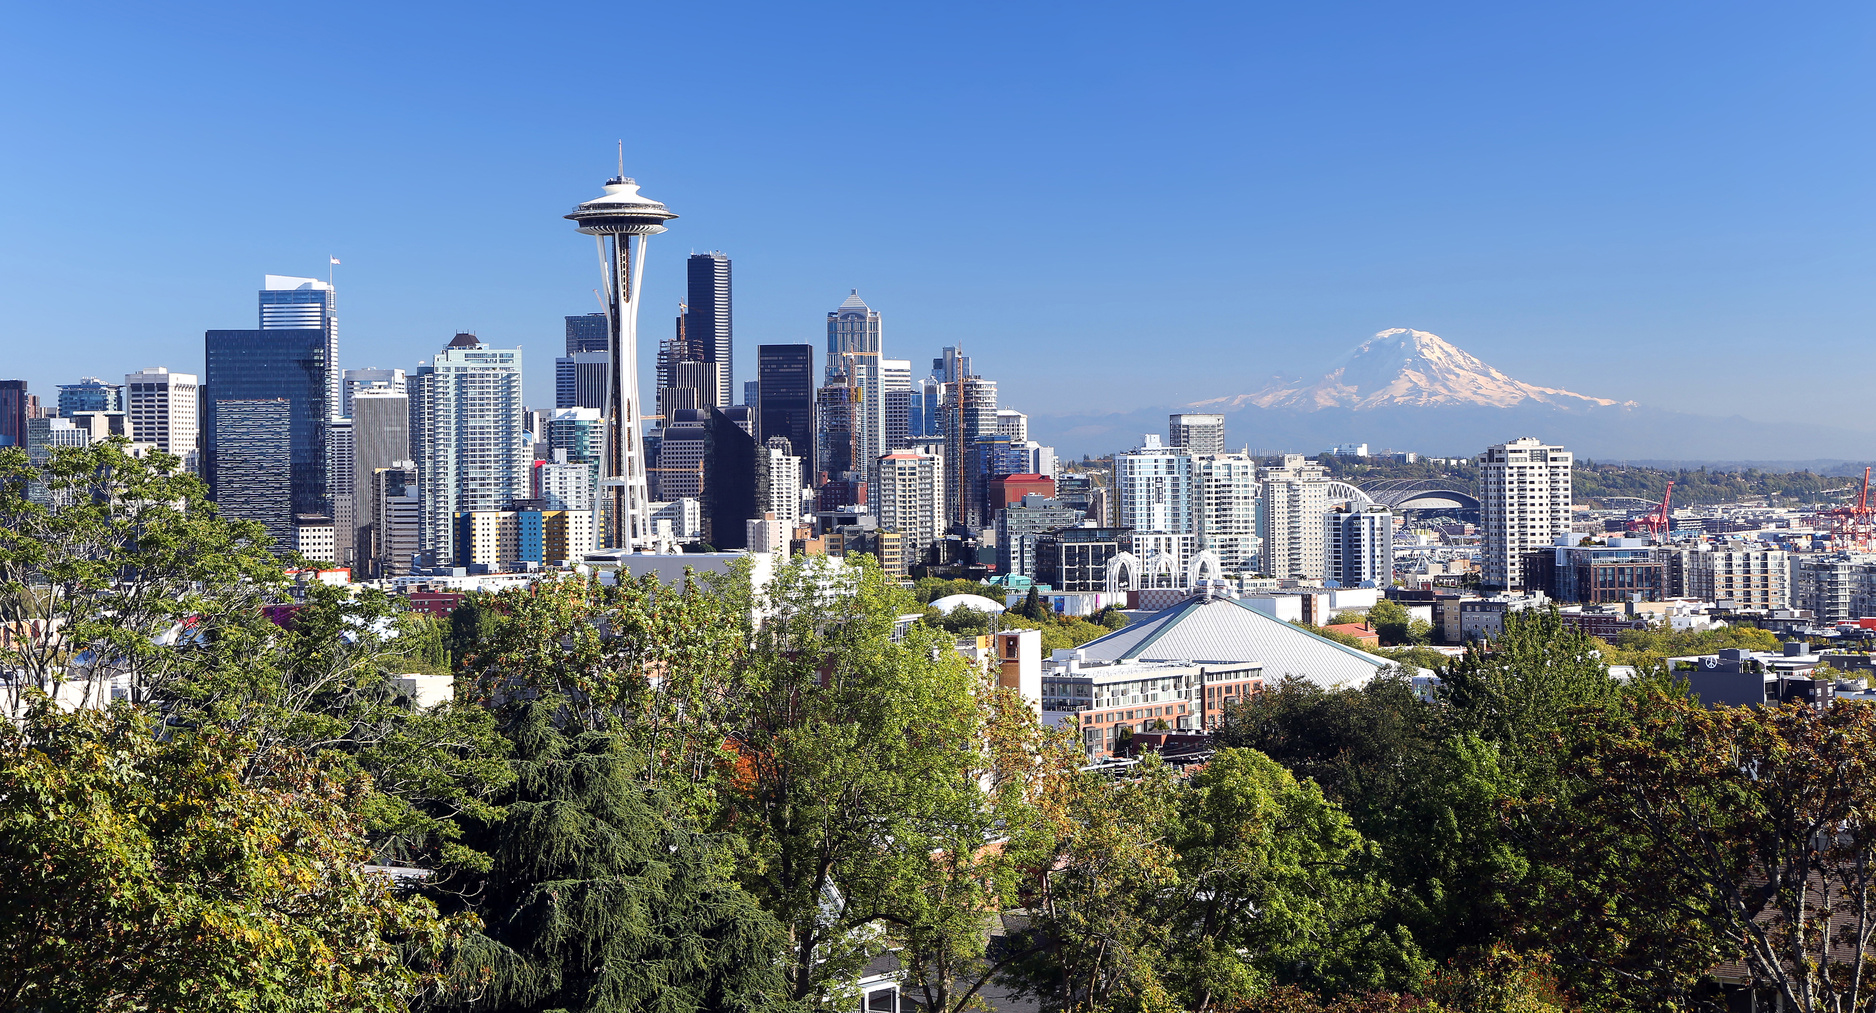 Seattle with Mount Rainier in the background